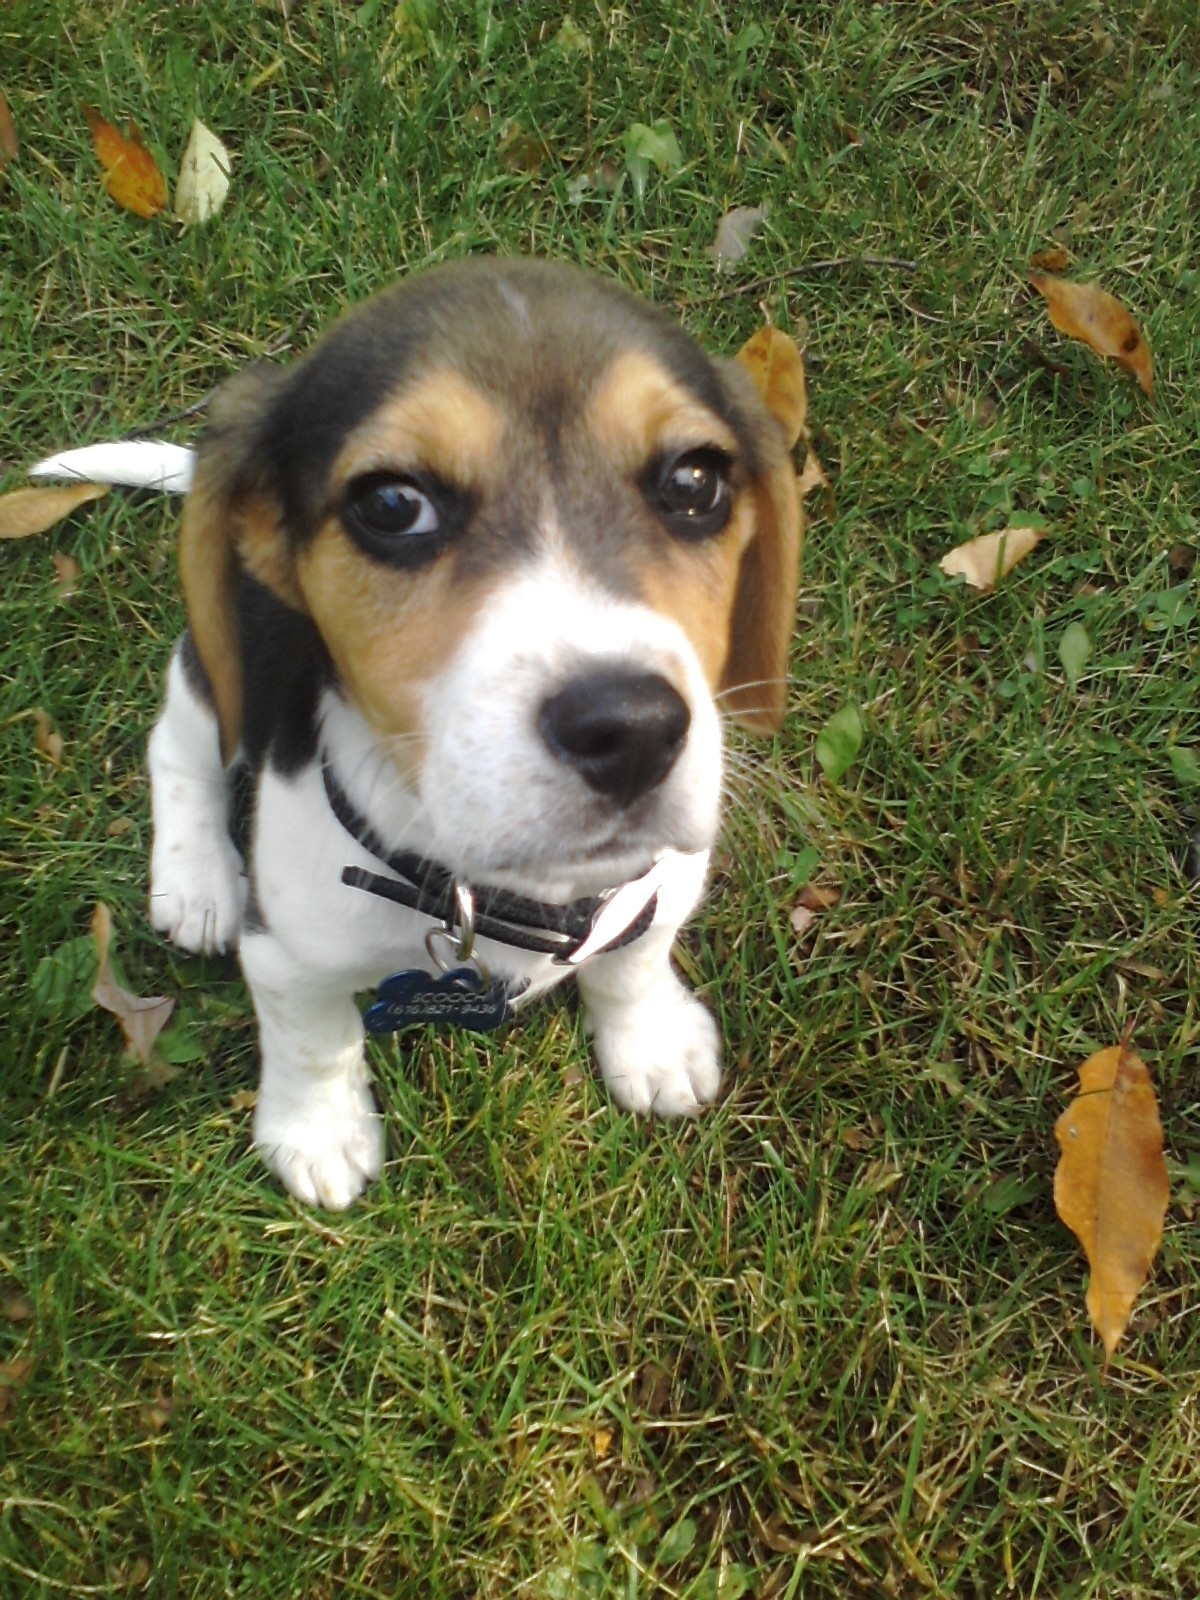 beagle pup dogs photo 15515222 fanpop